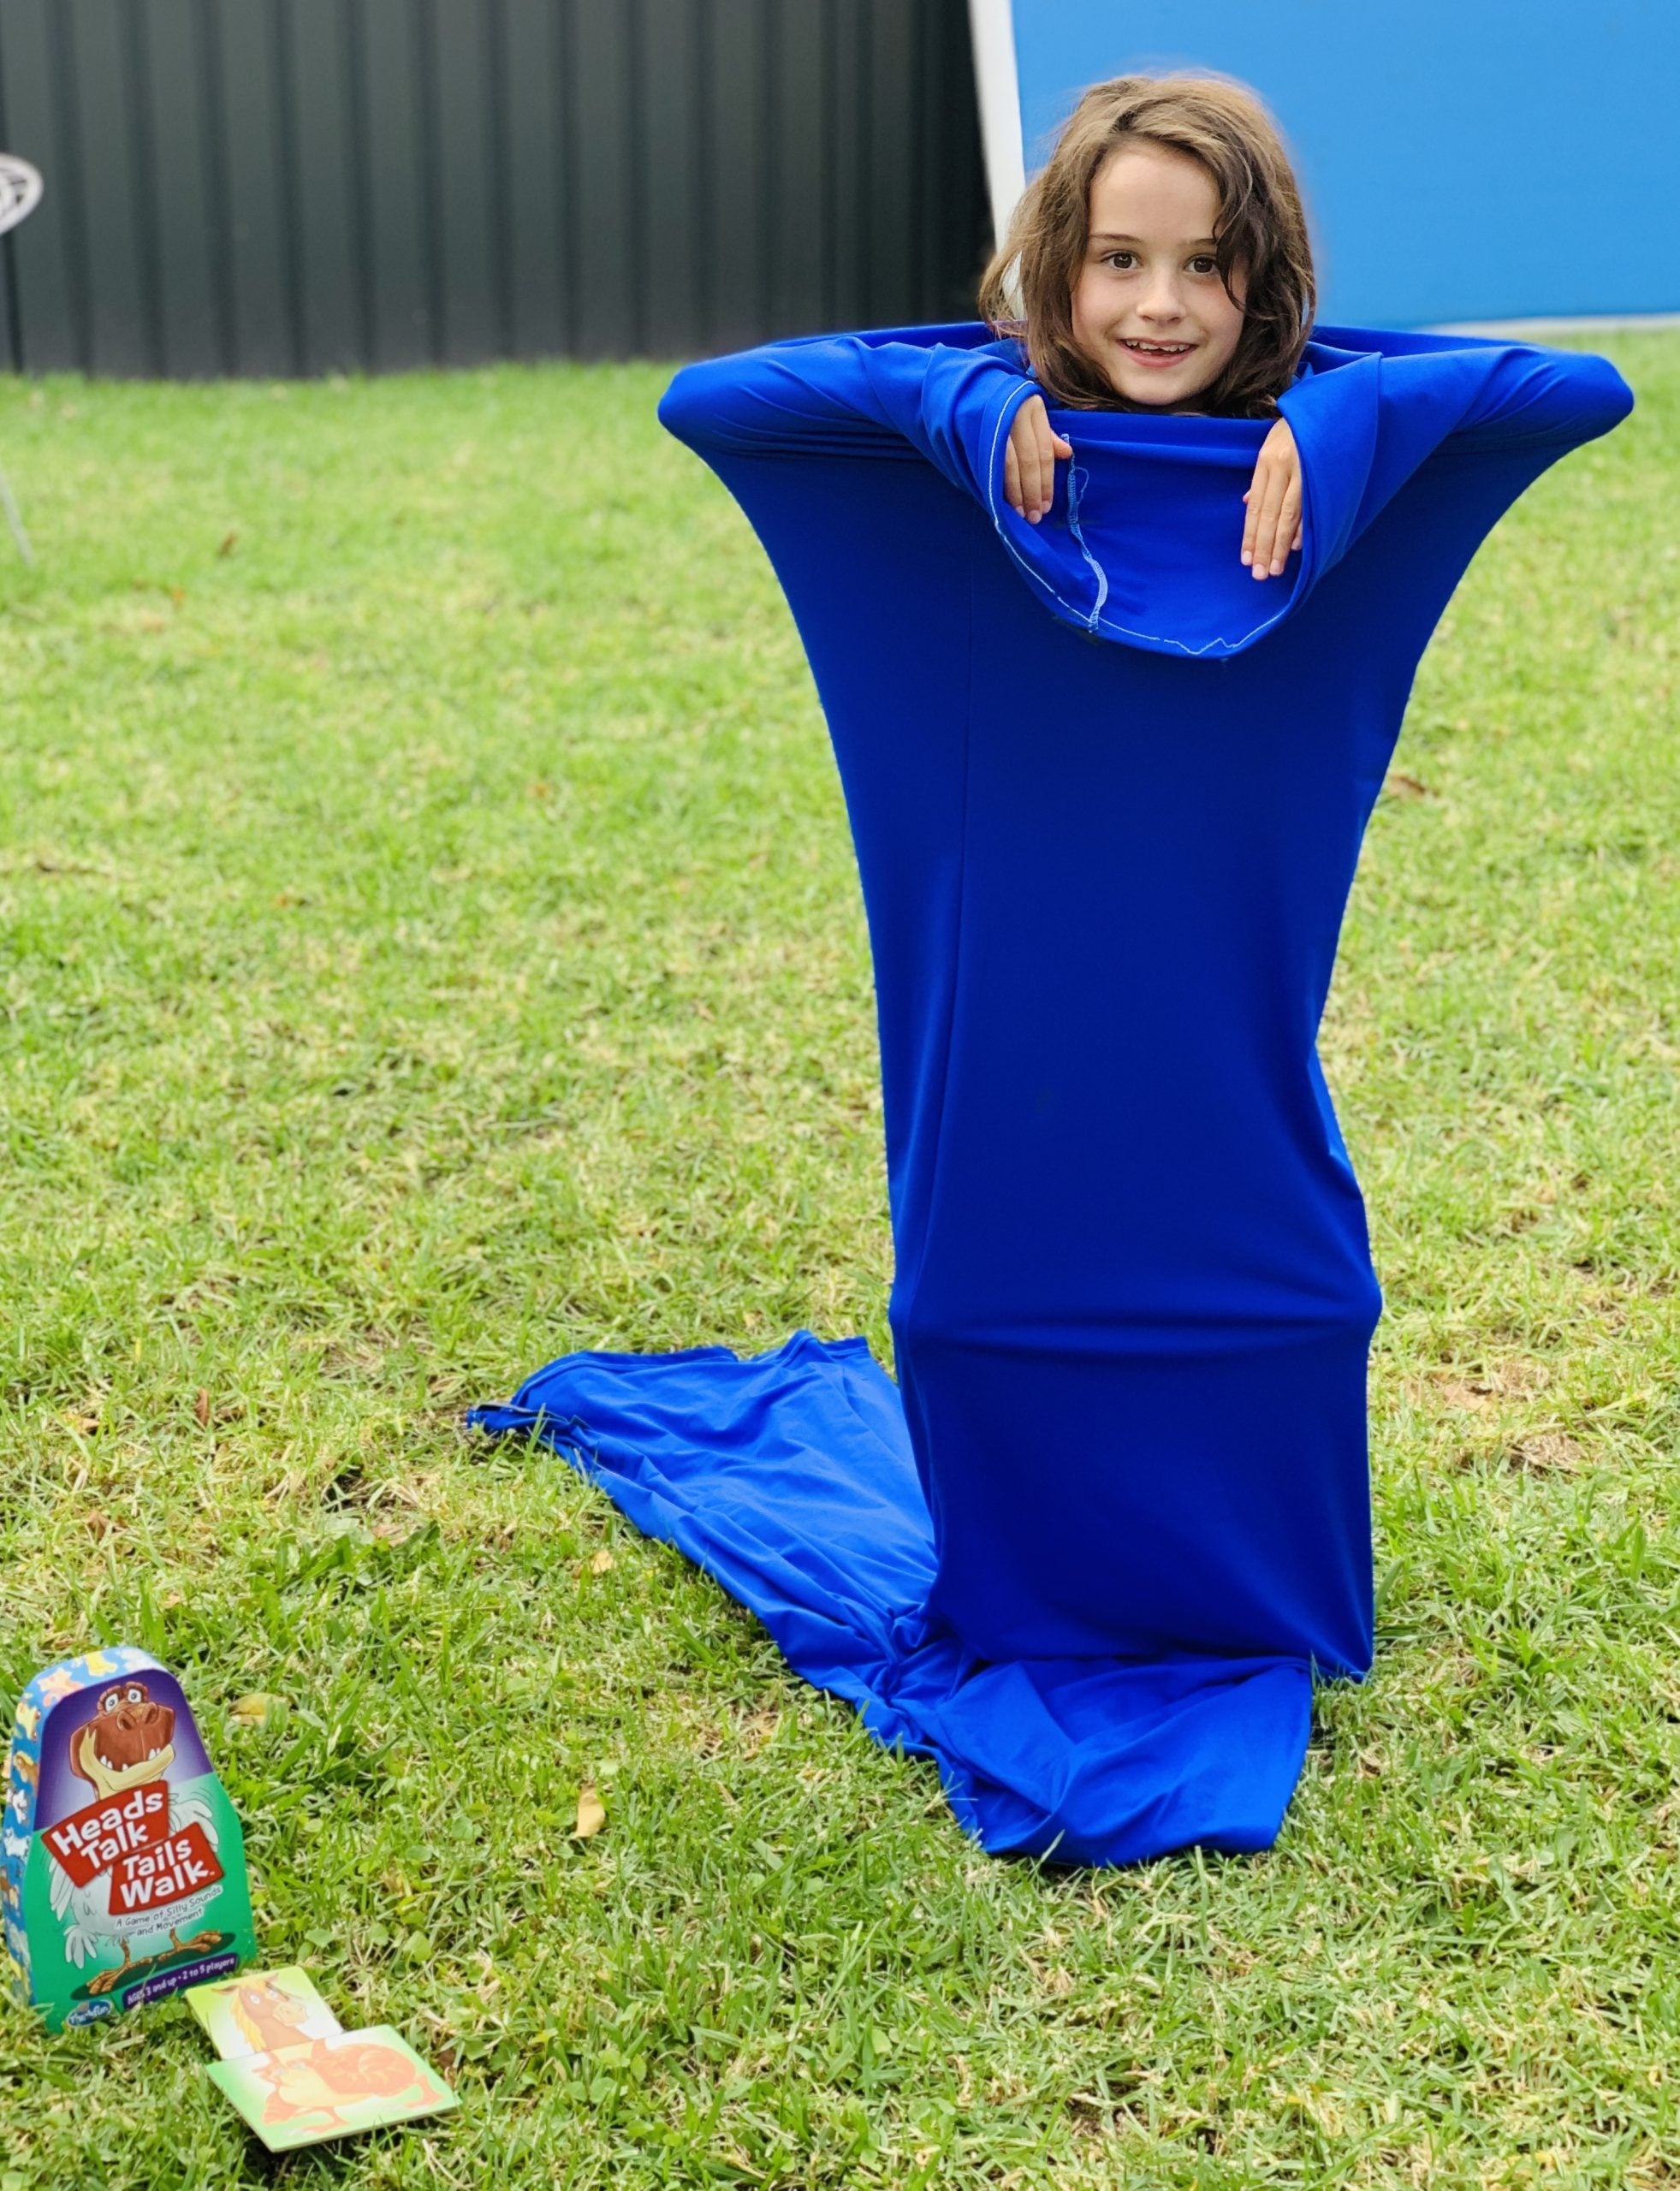 Girl standing on grass inside blue Lycra Tunnel playing game